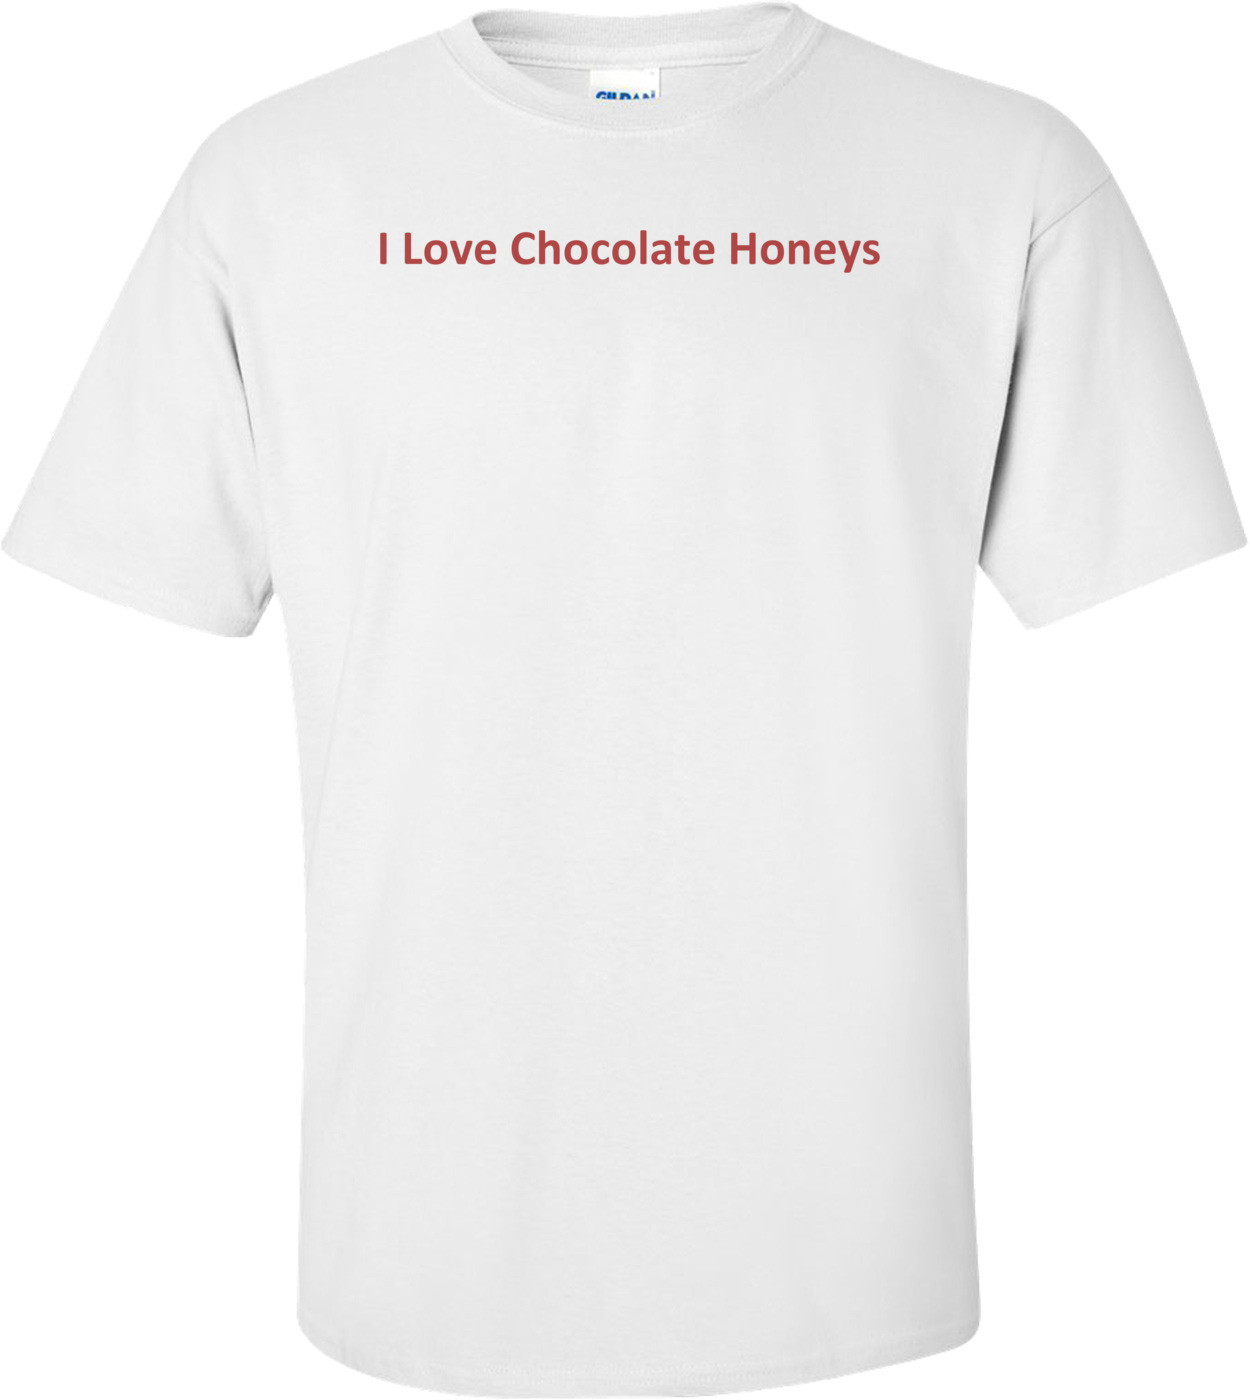 I Love Chocolate Honeys T-Shirt